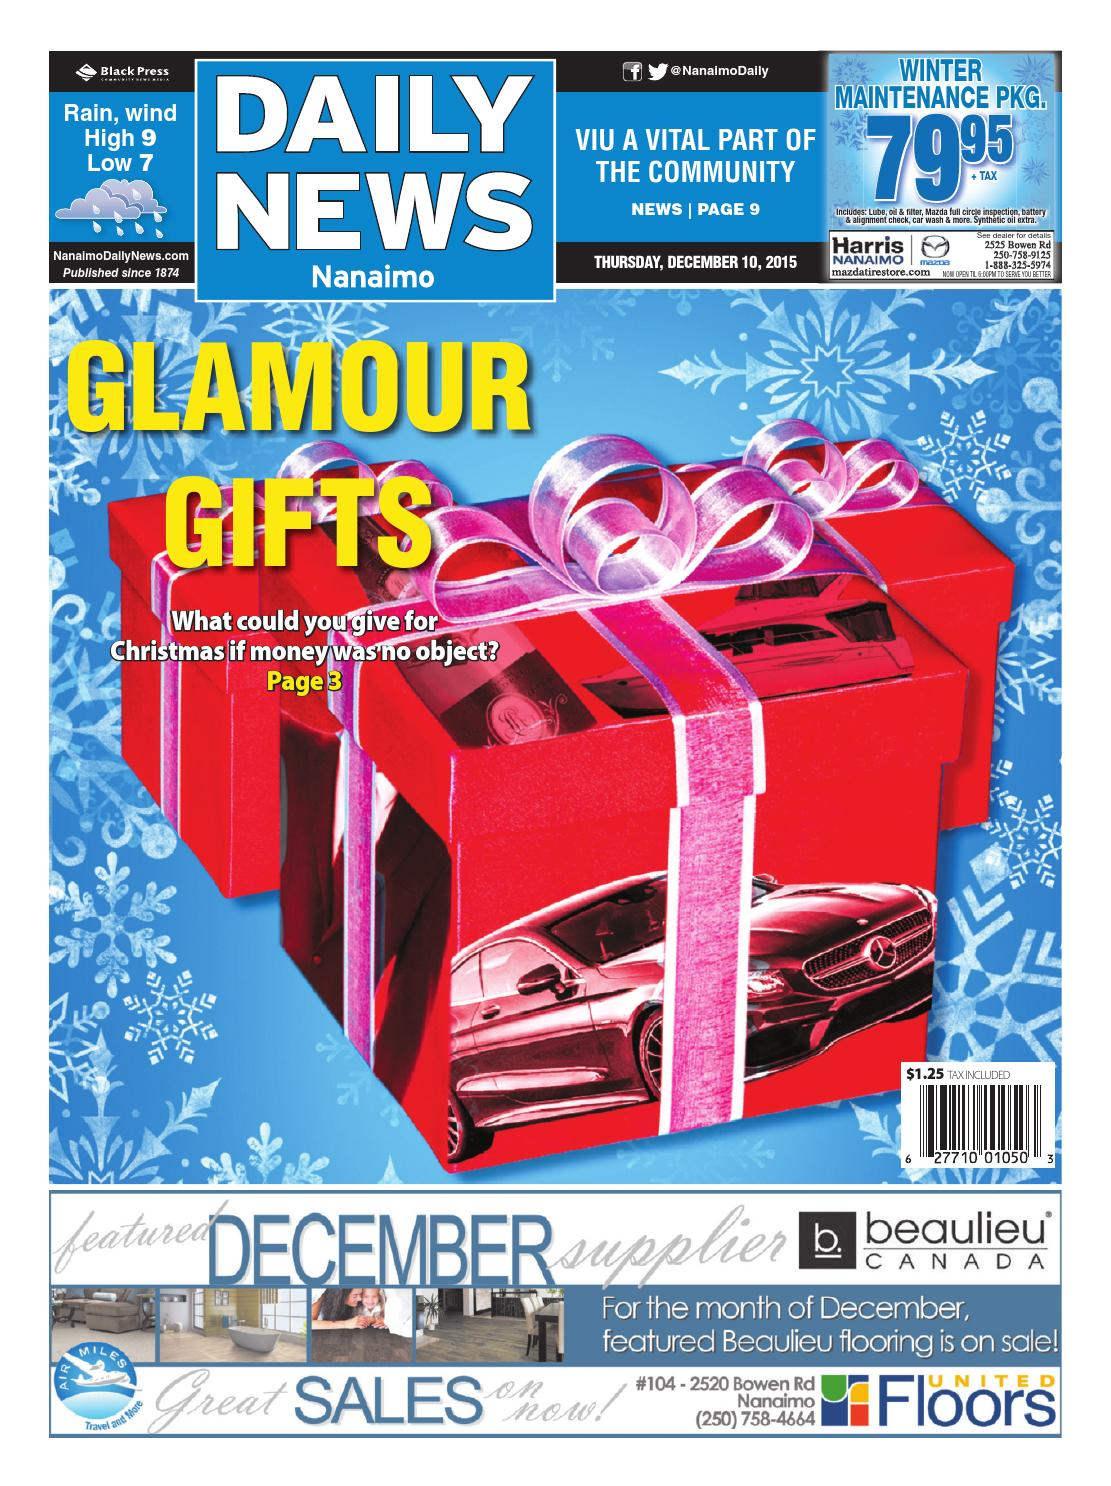 Nanaimo Daily News, December 10, 2015 by Black Press Media